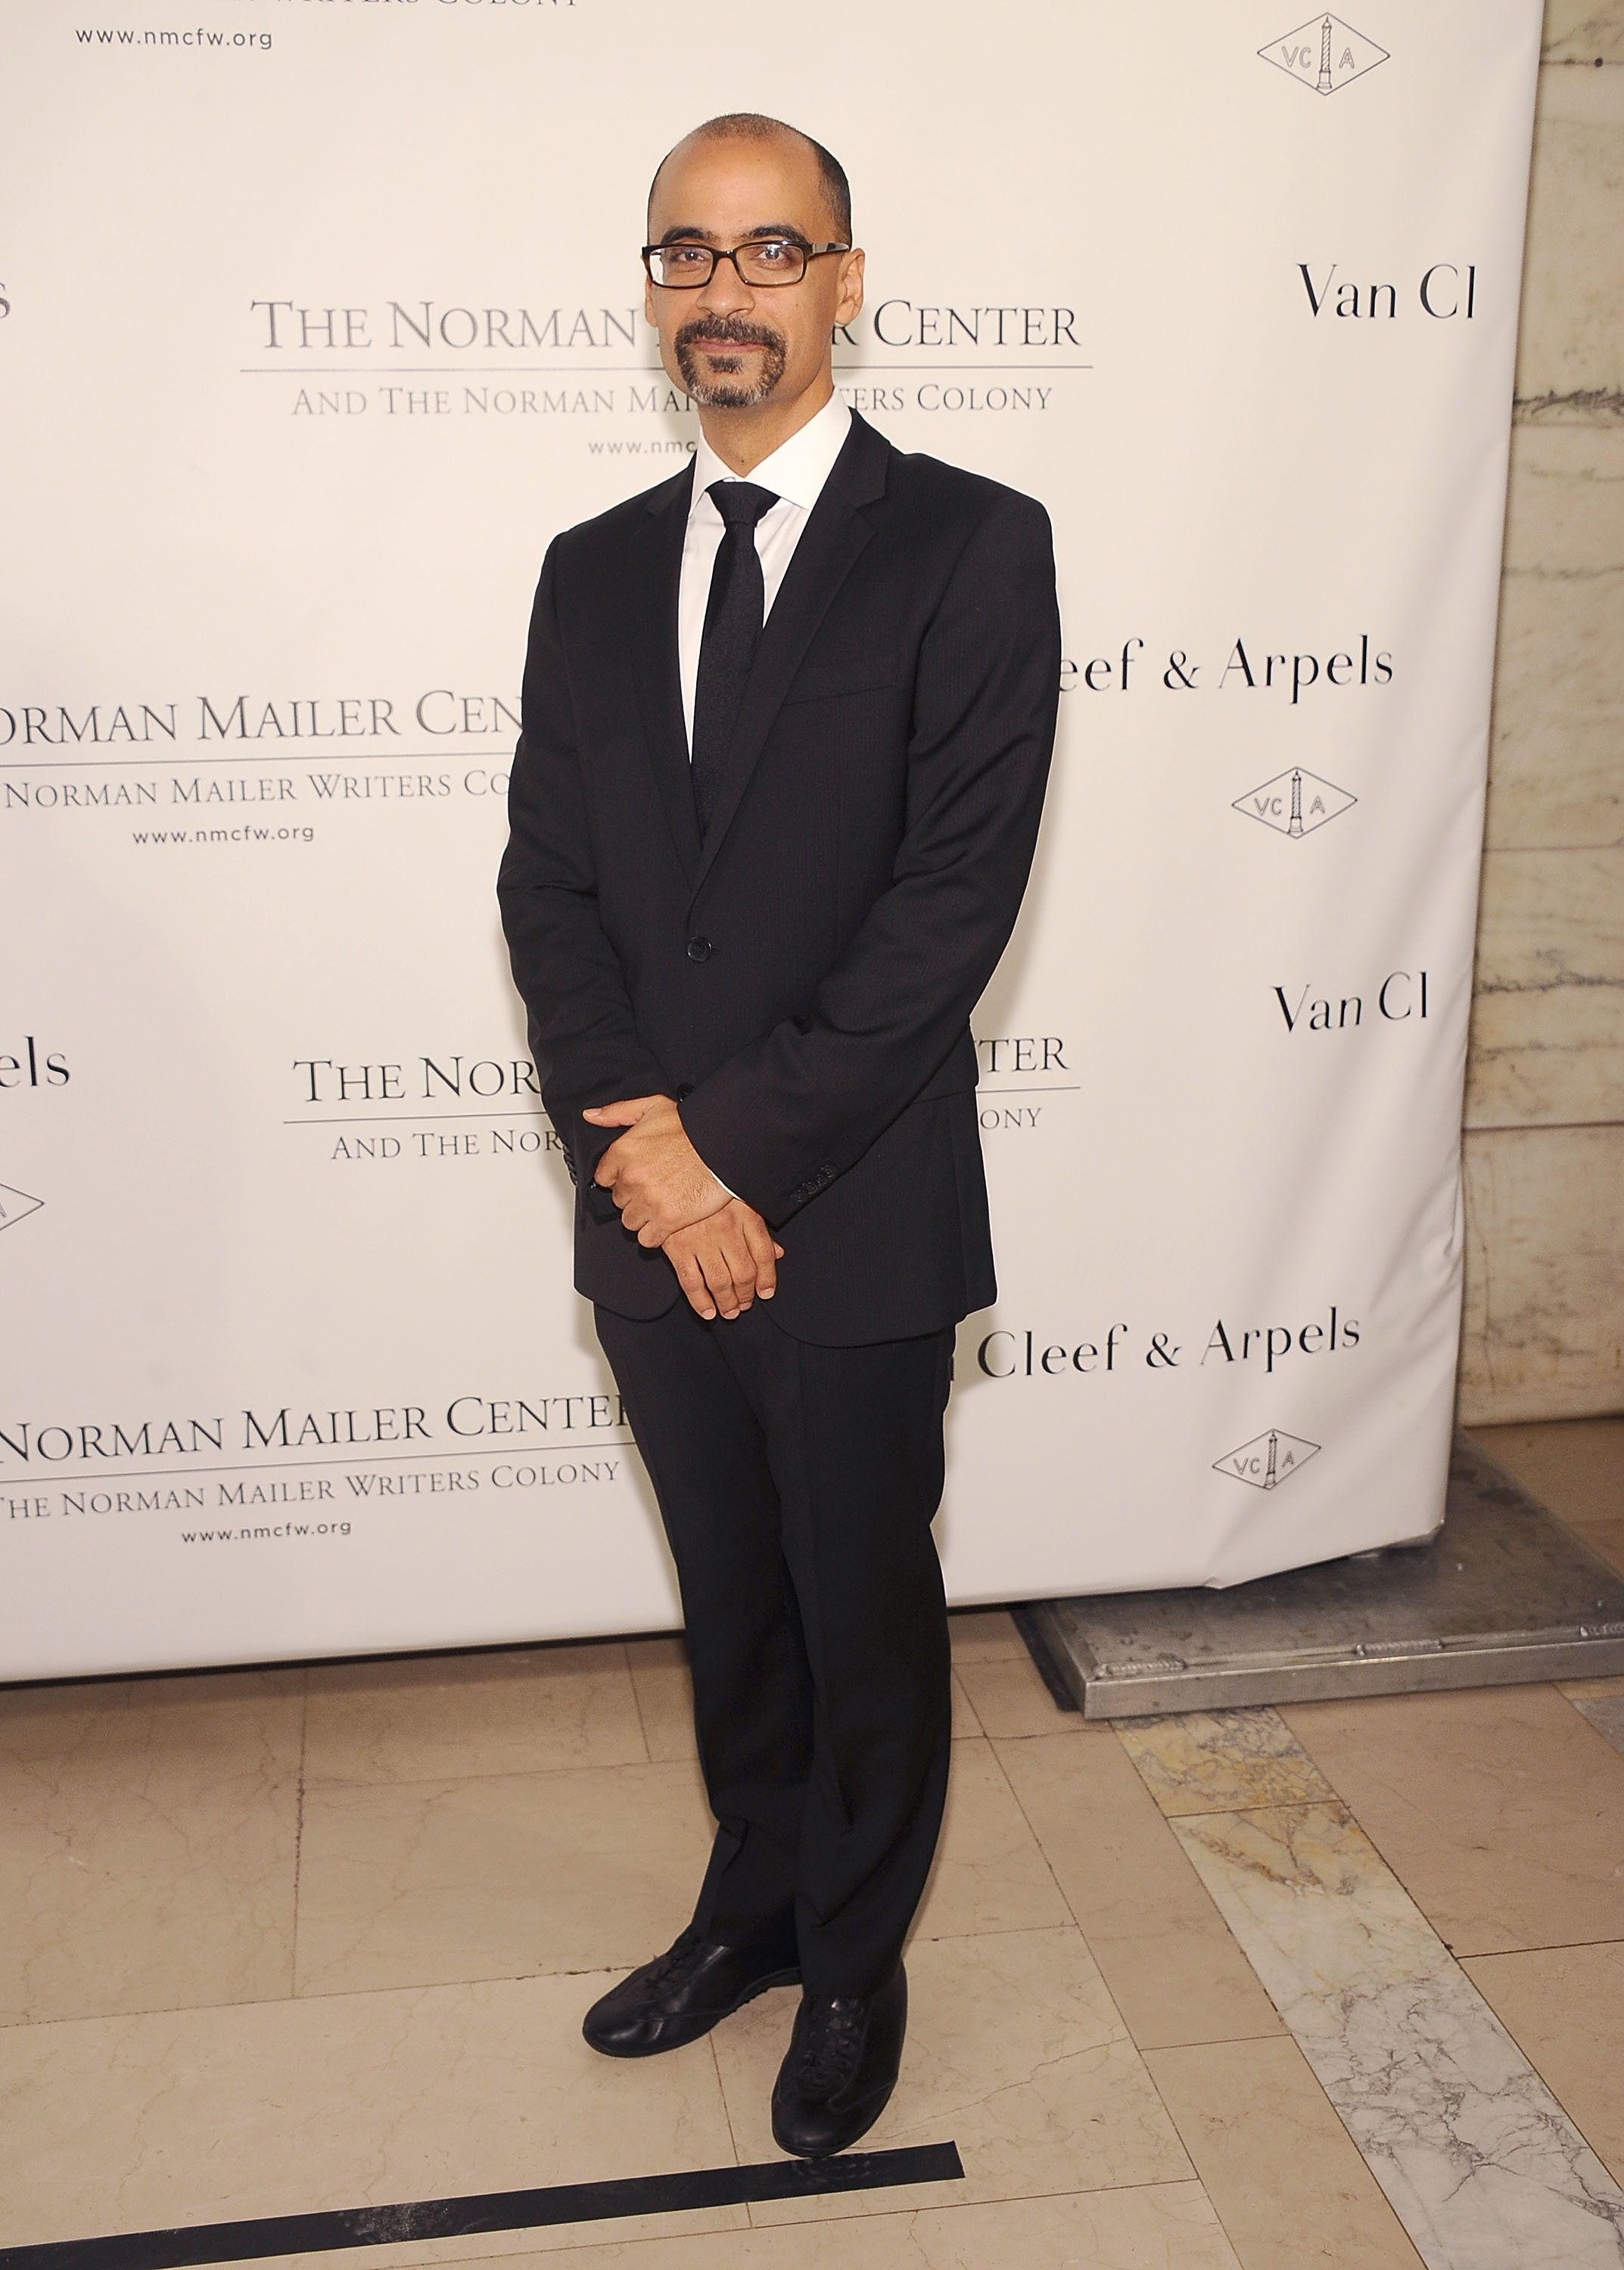 NEW YORK, NY - OCTOBER 17:  Event honoree, author Junot Diaz attends the 2013 Norman Mailer Center Gala at New York Public Library on October 17, 2013 in New York City.  (Photo by Gary Gershoff/WireImage)